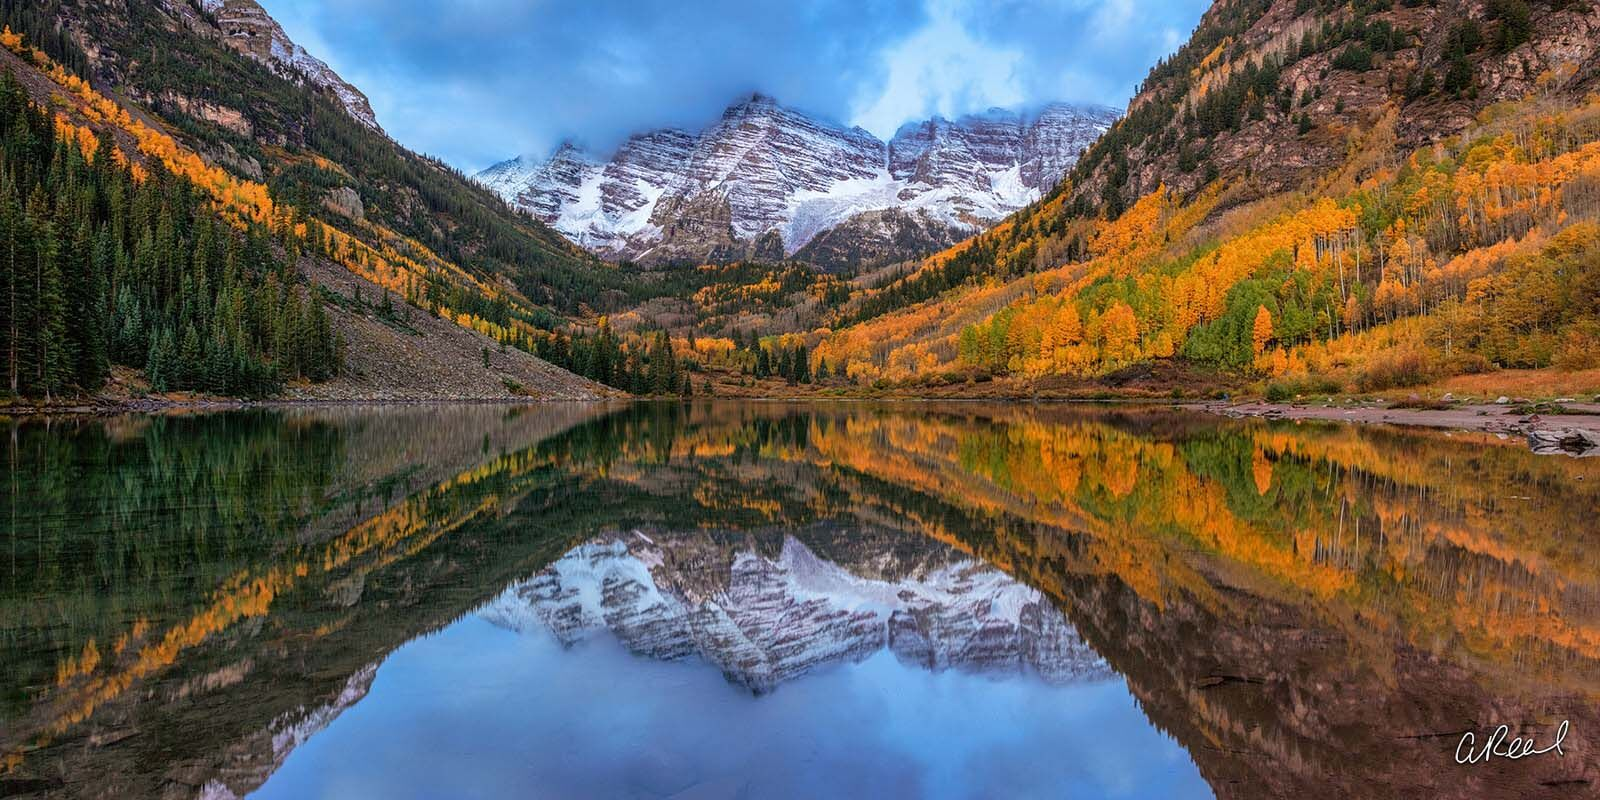 Transform your space with Aaron Reed's luxury fine art photography print, Royalty, from his Panoramic Wall Art collection. Order...